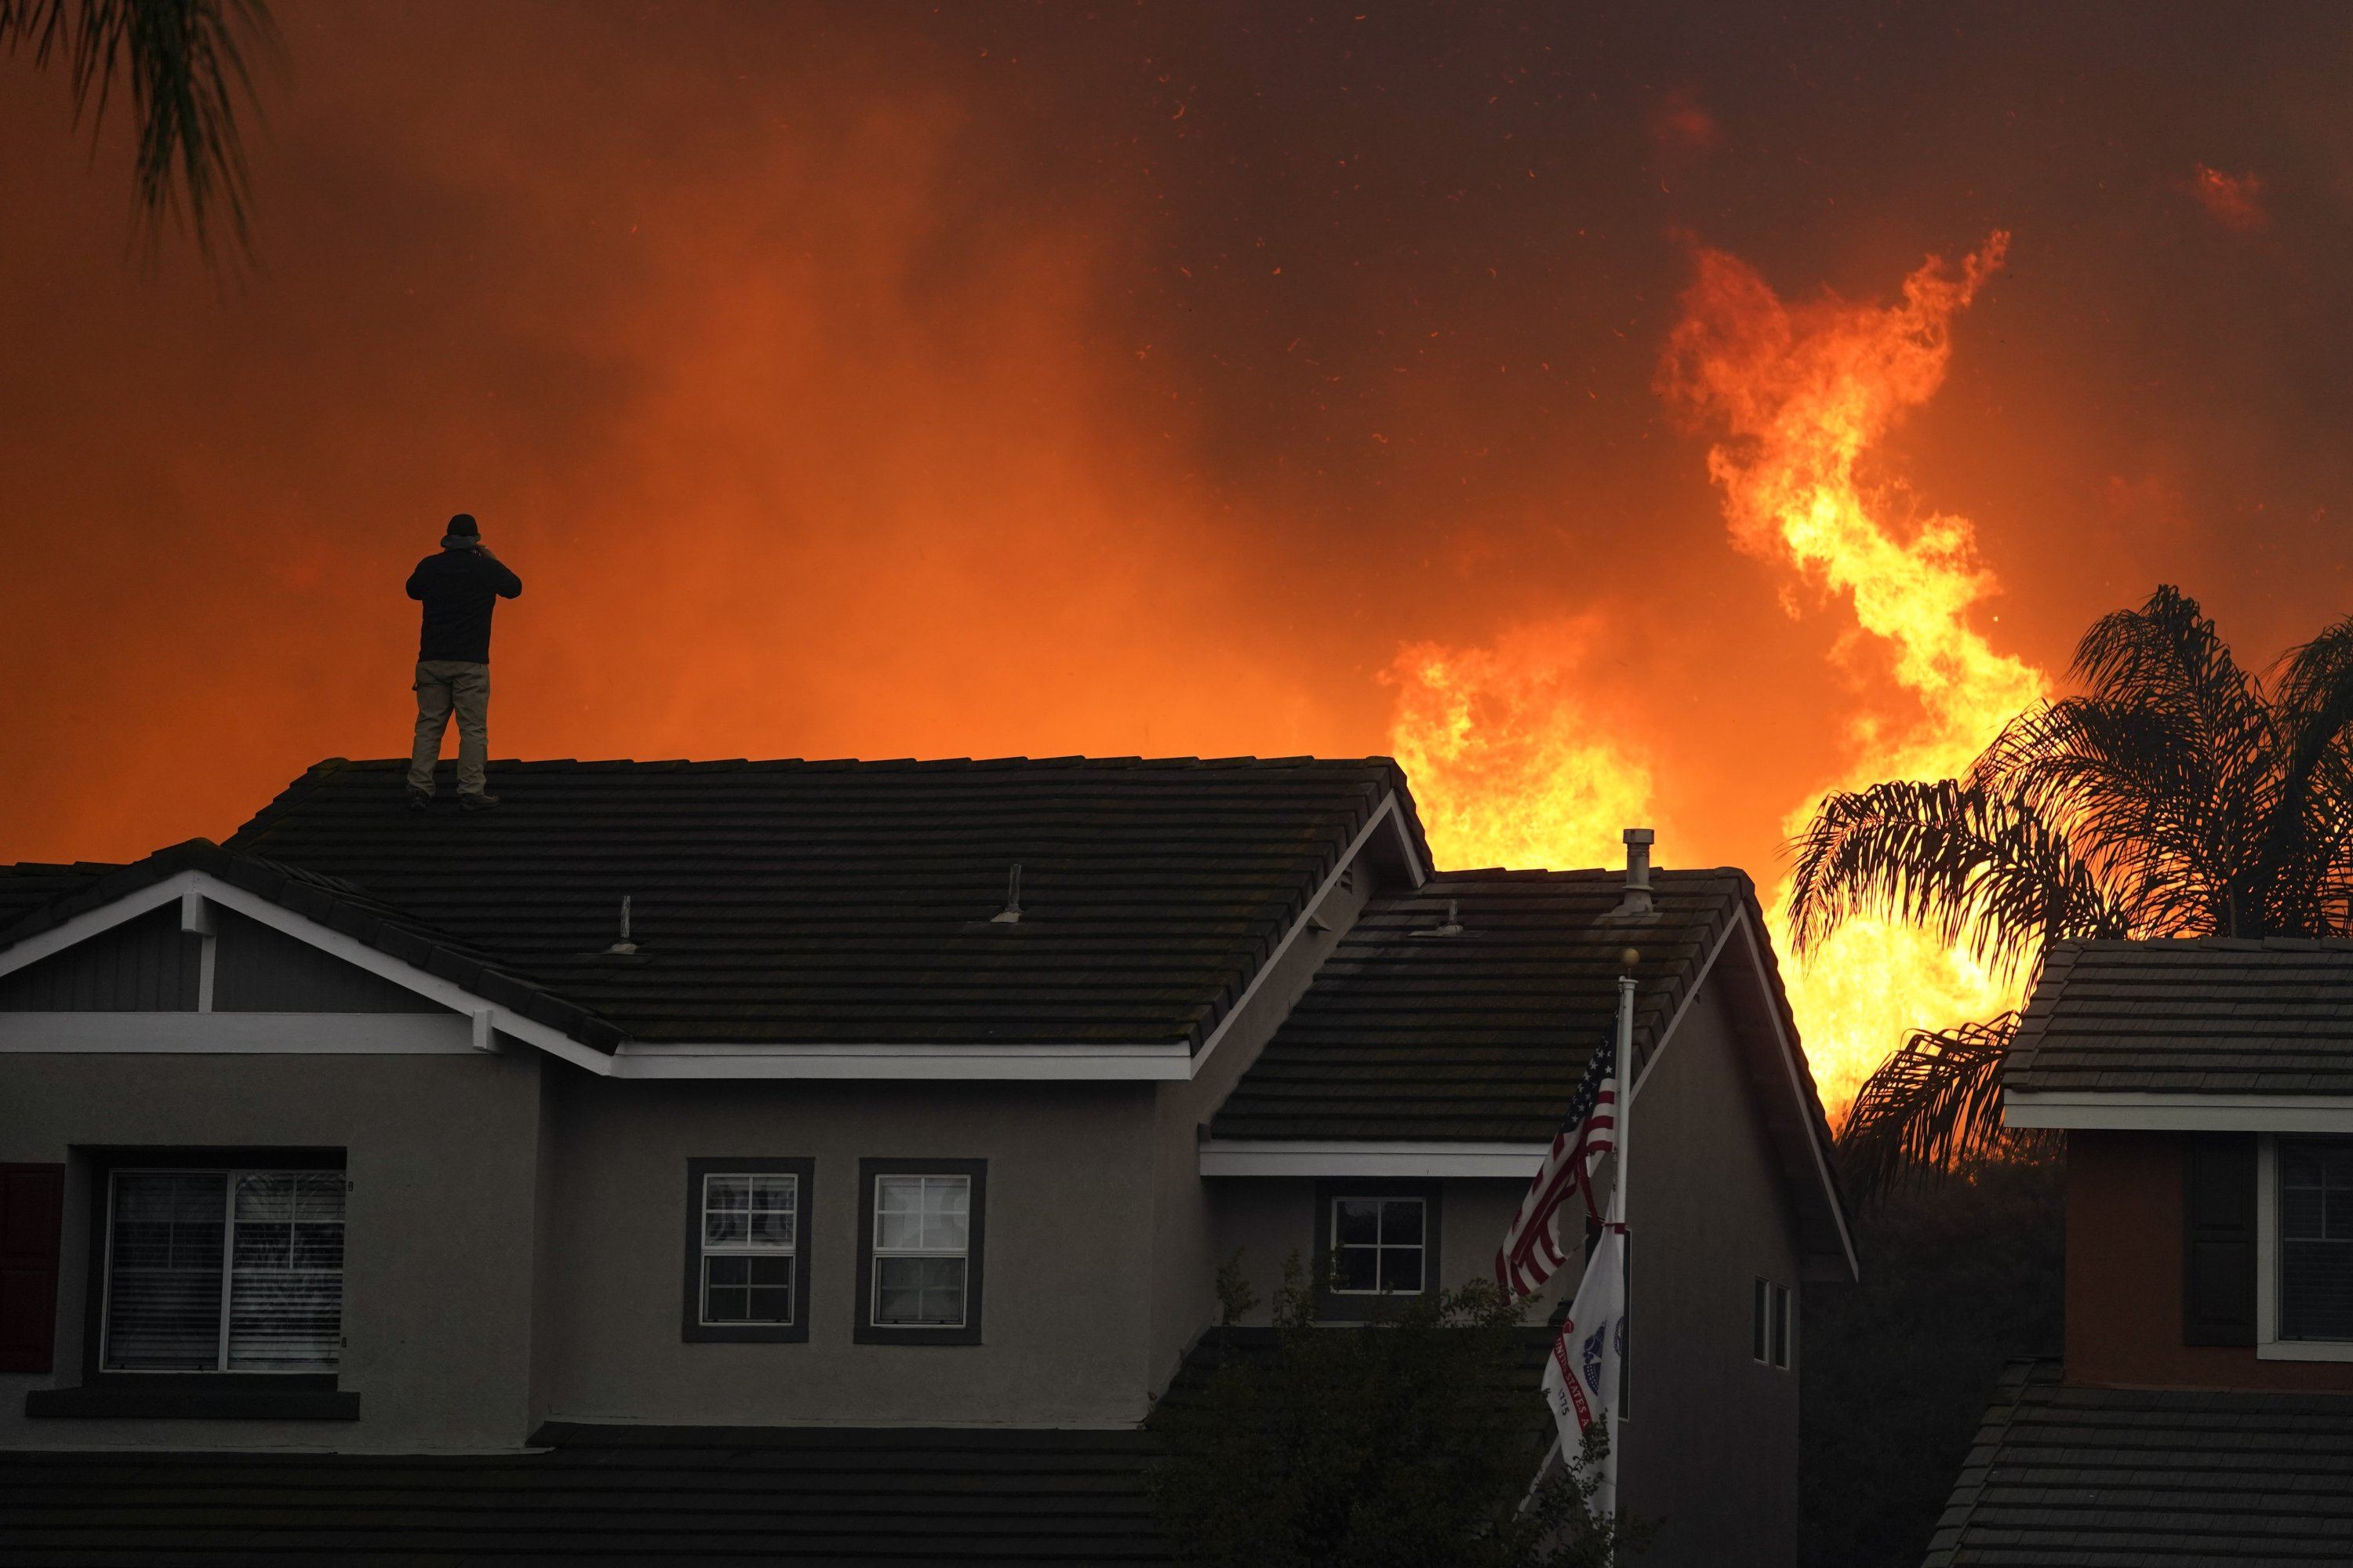 Herman Termeer, 54, stands on the roof of his home as the Blue Ridge Fire burns along the hillside Tuesday, Oct. 27, 2020, in Chino Hills, Calif. (AP Photo)